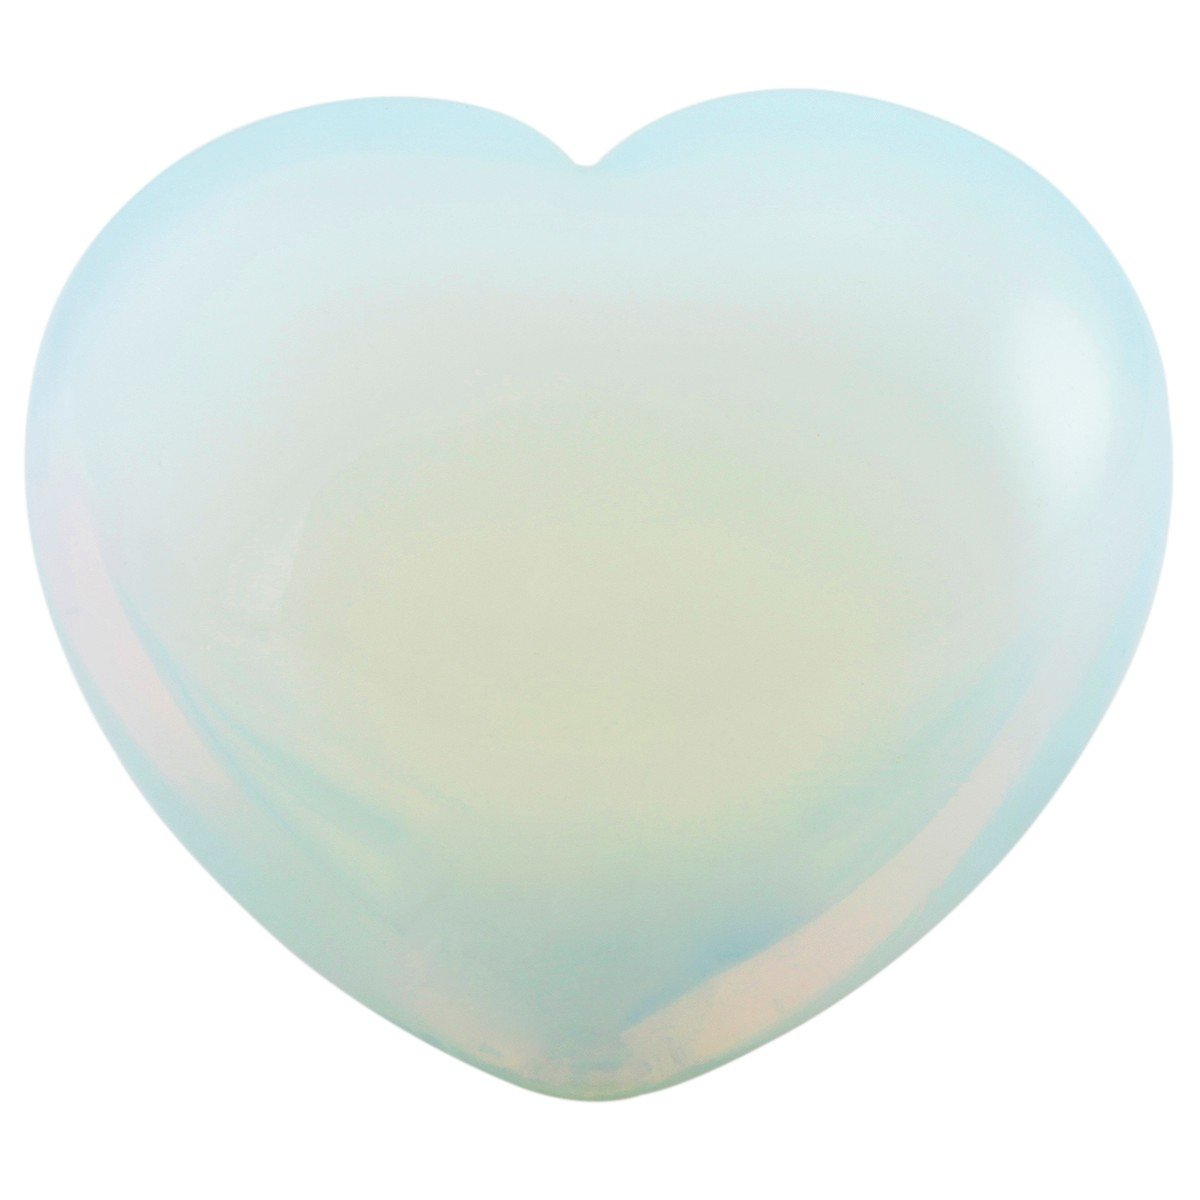 mookaitedecor Healing Crystals Heart Love Worry Palm Stone Reiki Balancing Fluorite 0.9 inches,Pack of 5